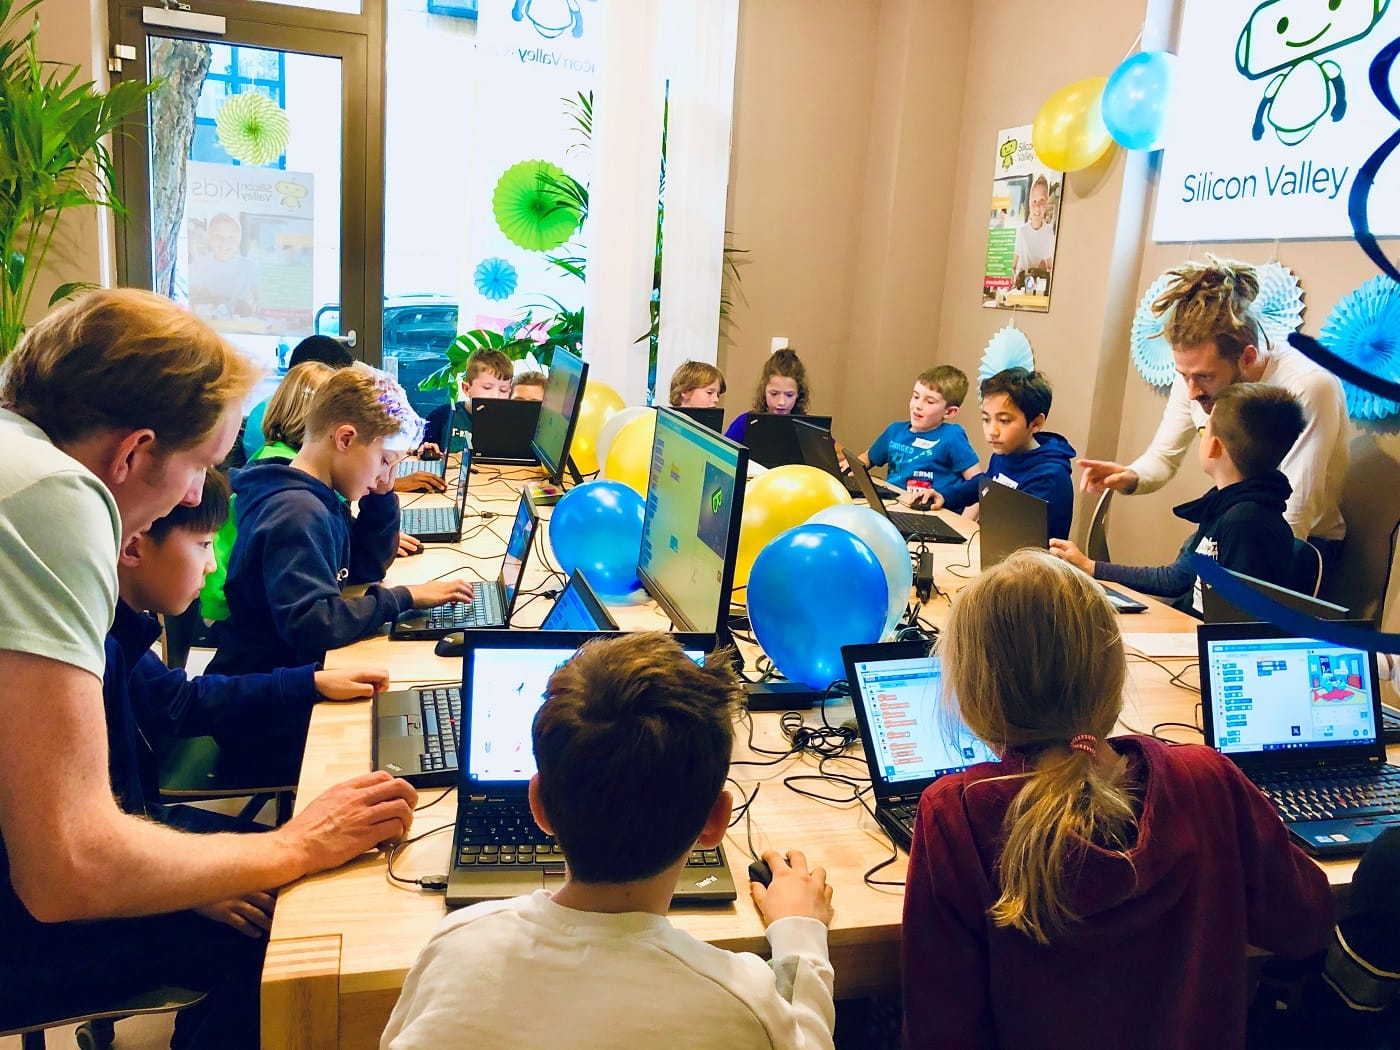 Coding-Kurse für Kinder in Berlin bei Silicon Valley Kids // HIMBEER